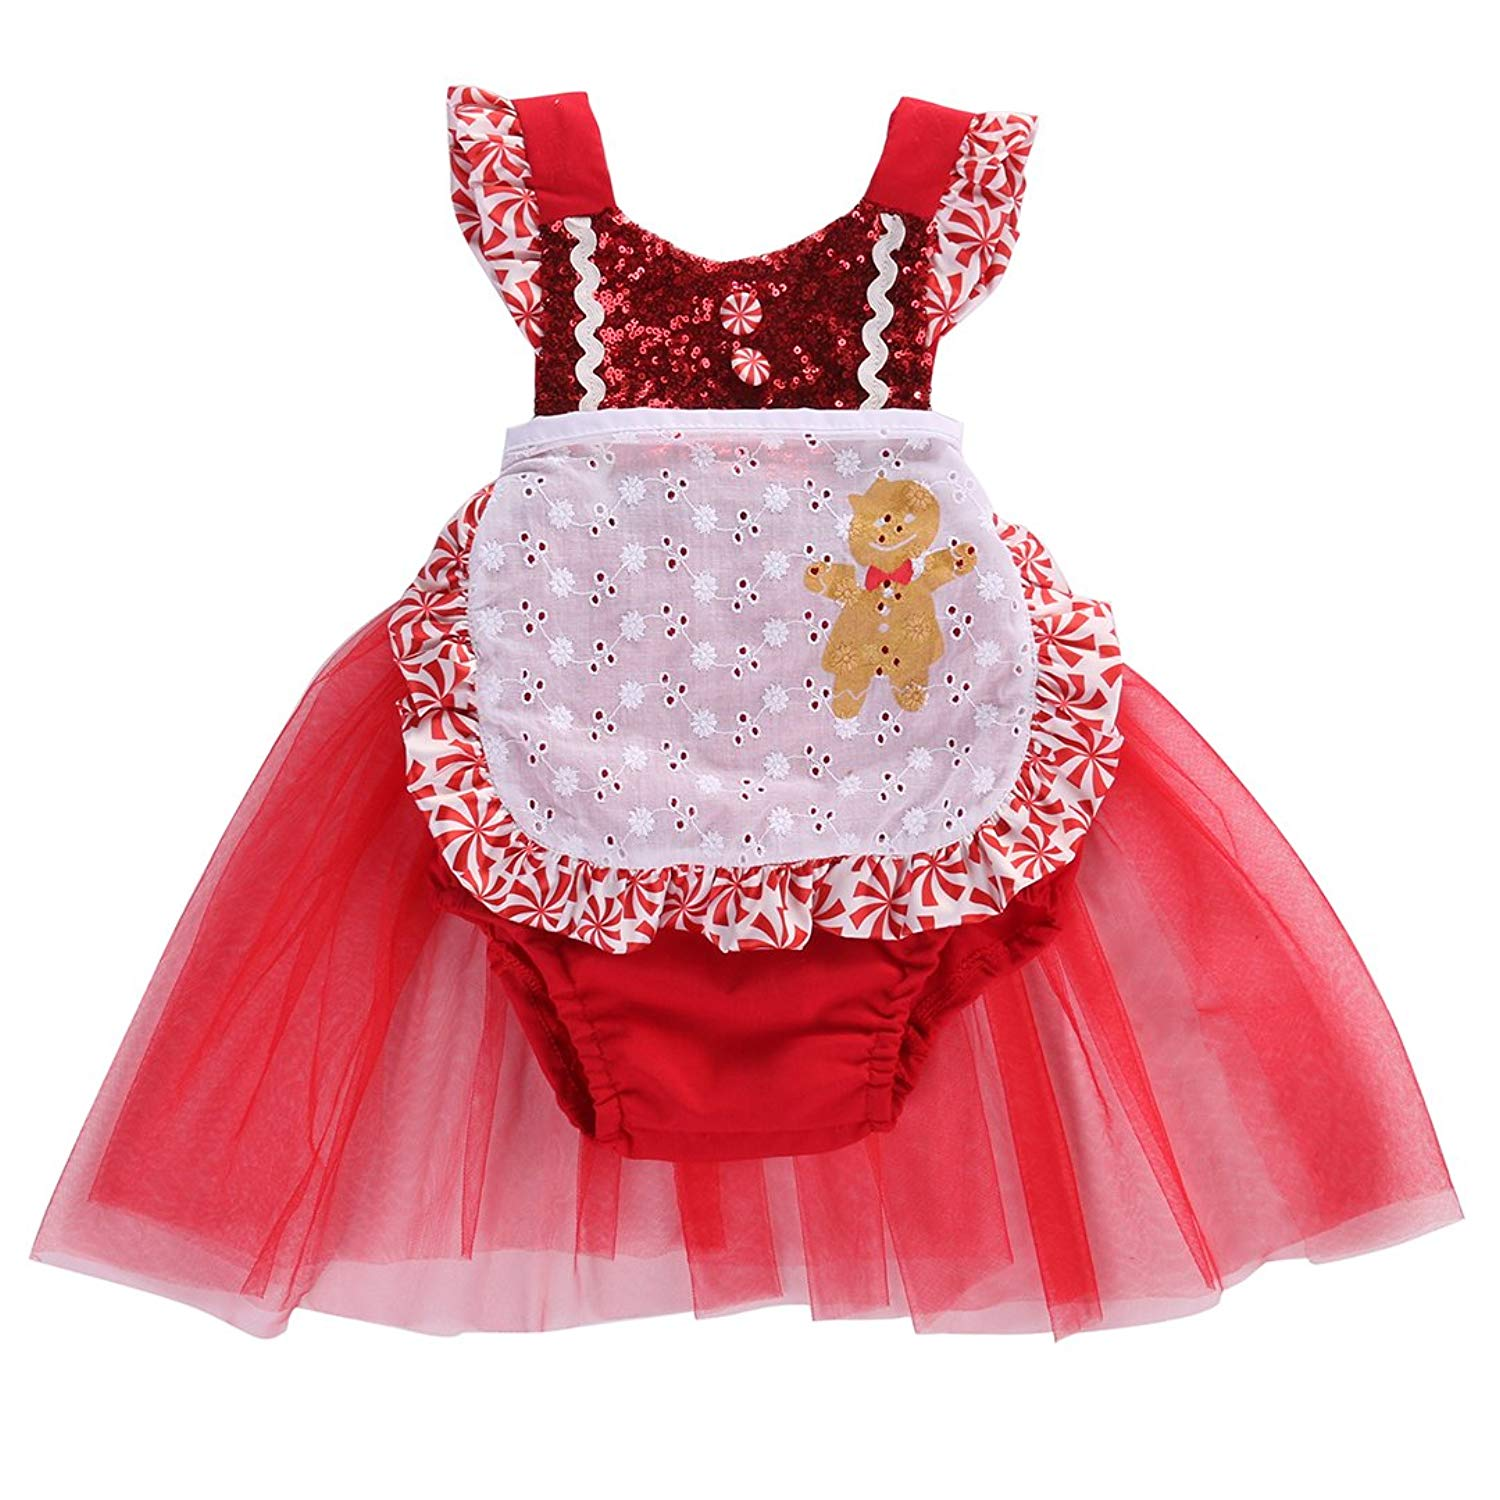 Pumsun Children Summer Dress Sleeveless Printed Princess Dress Children Kids Outfits Clothes